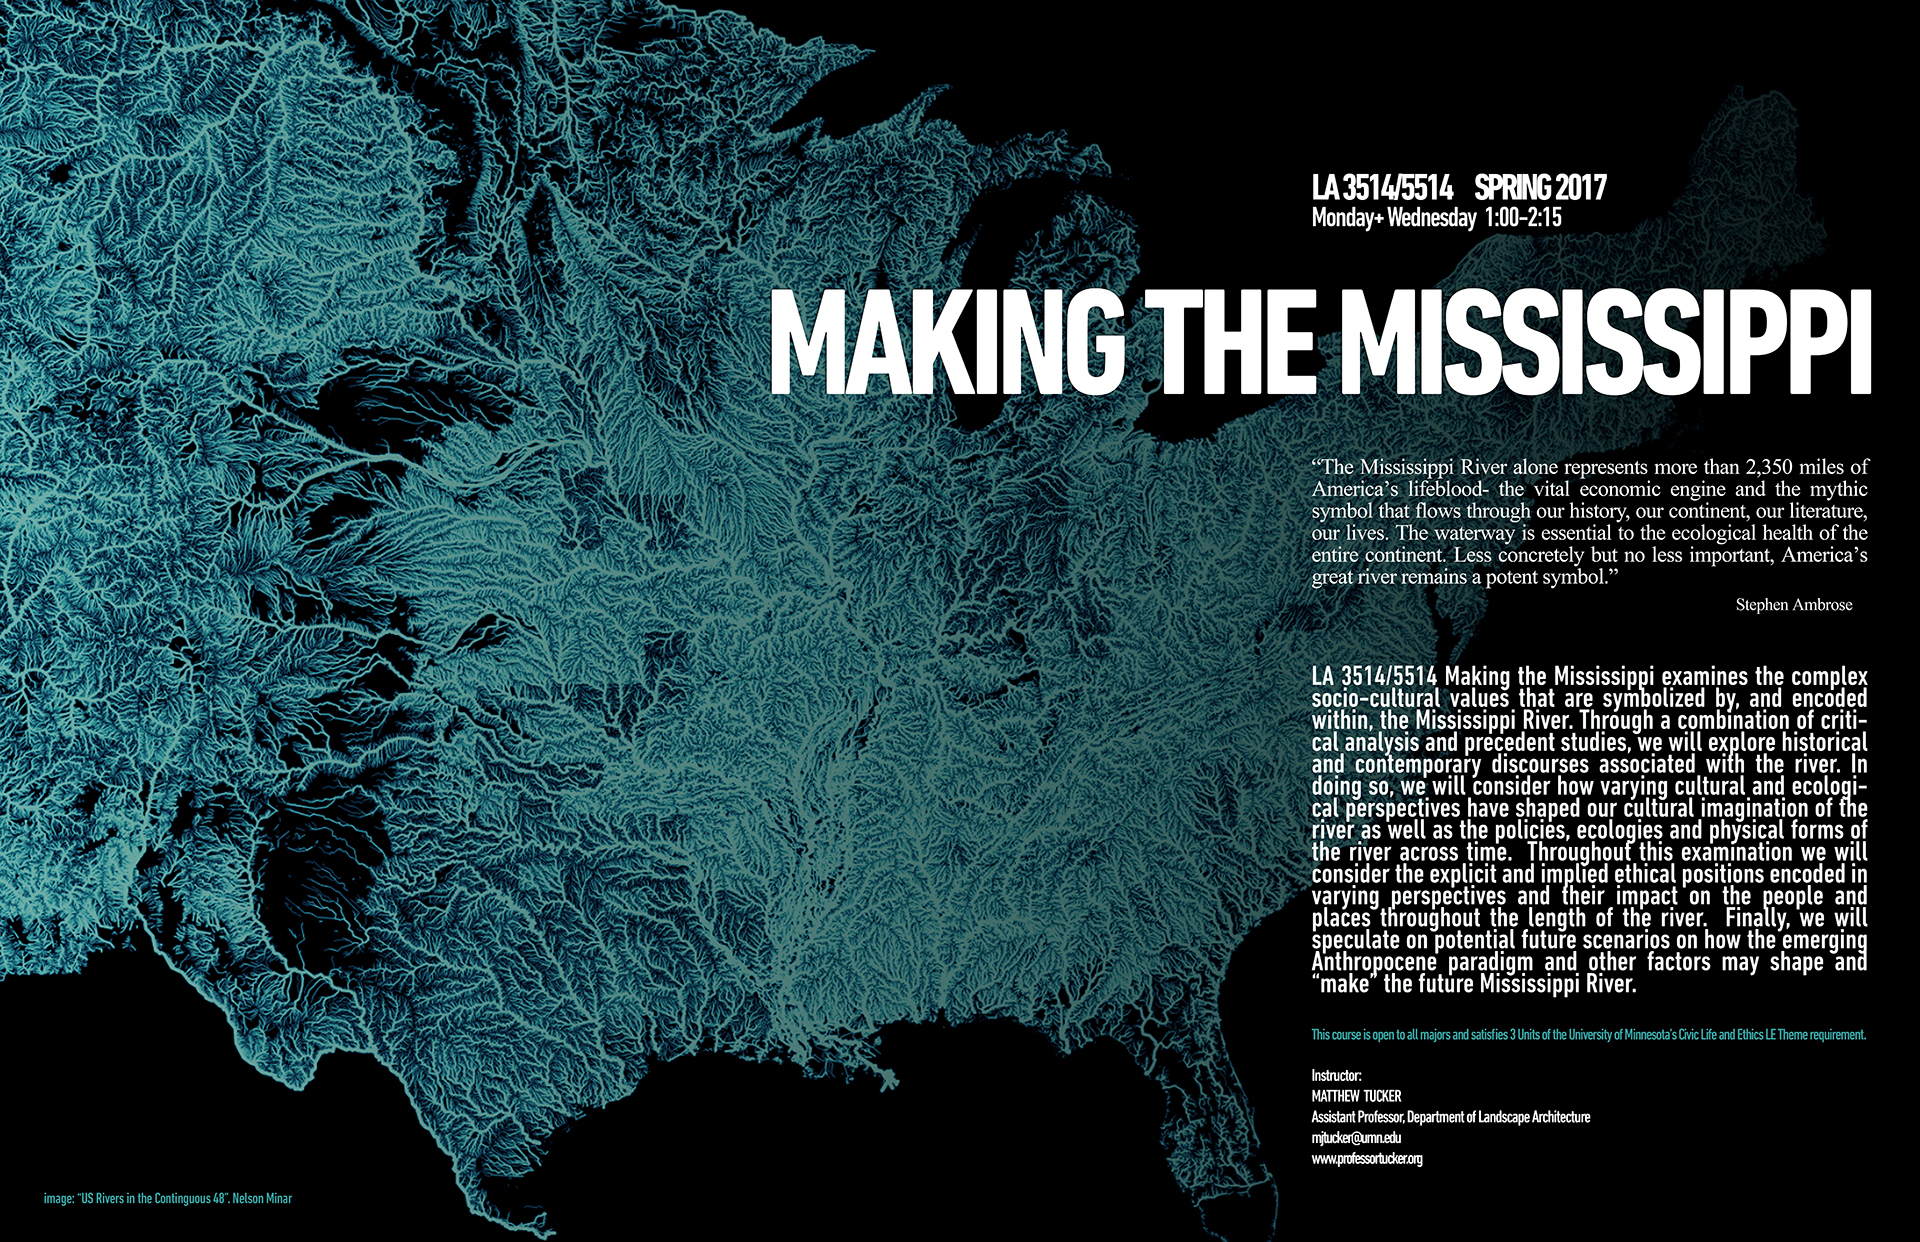 Making the Mississippi Course poster